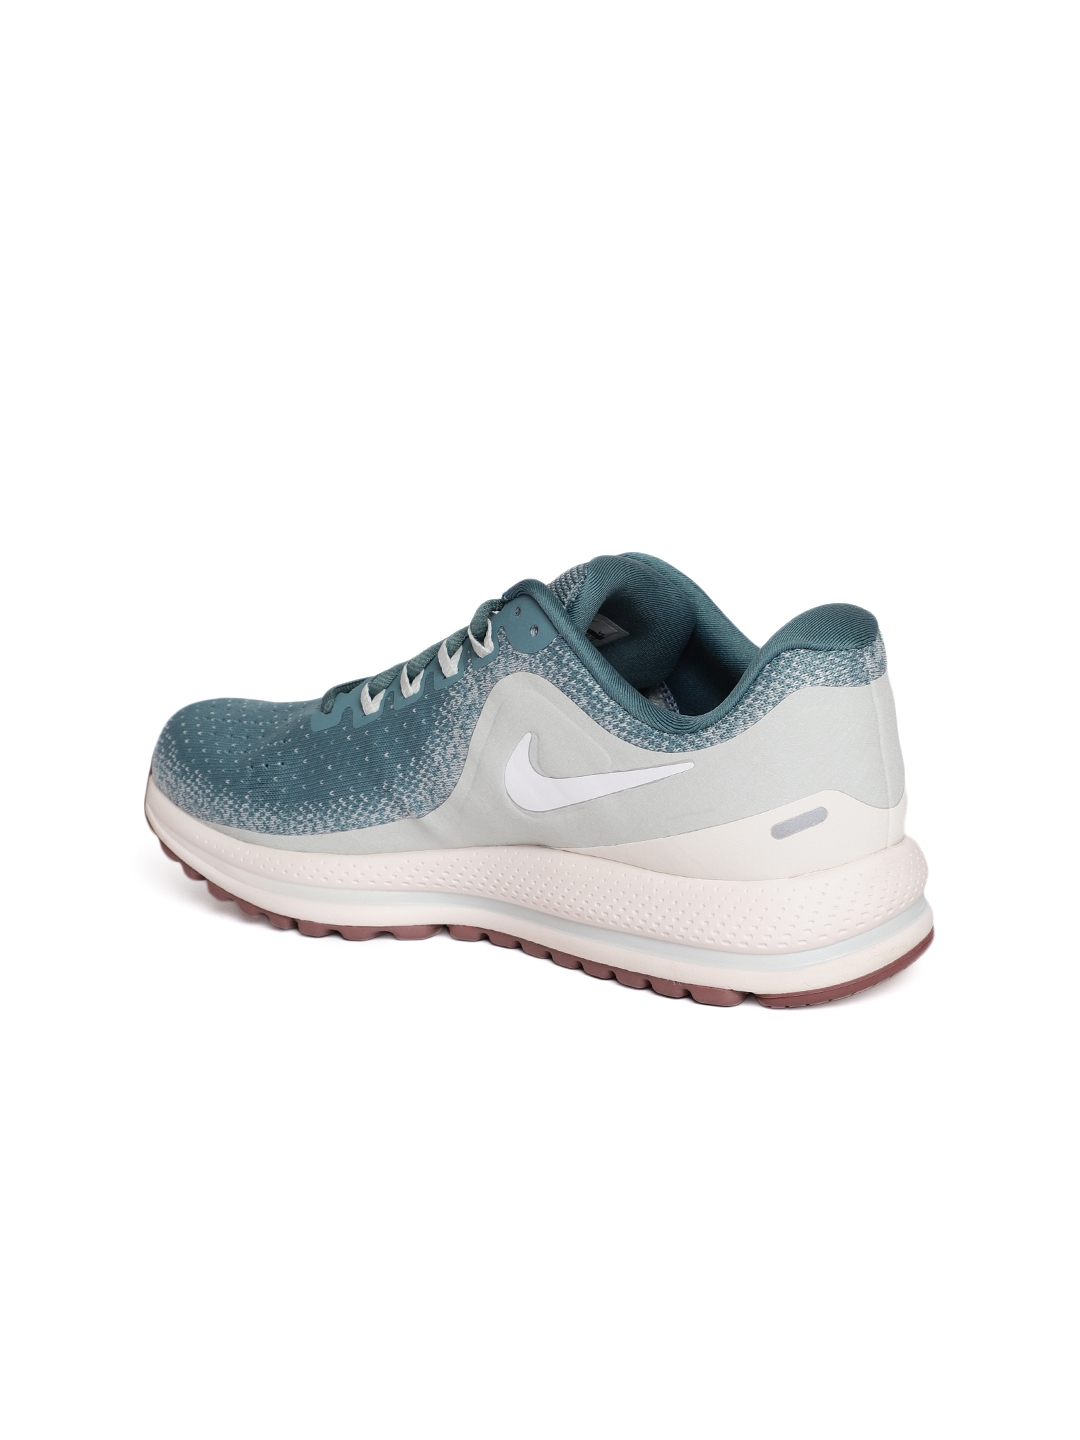 125acacbe8f8 Buy Nike Women Teal AIR ZOOM VOMERO 13 Running Shoes - Sports Shoes ...